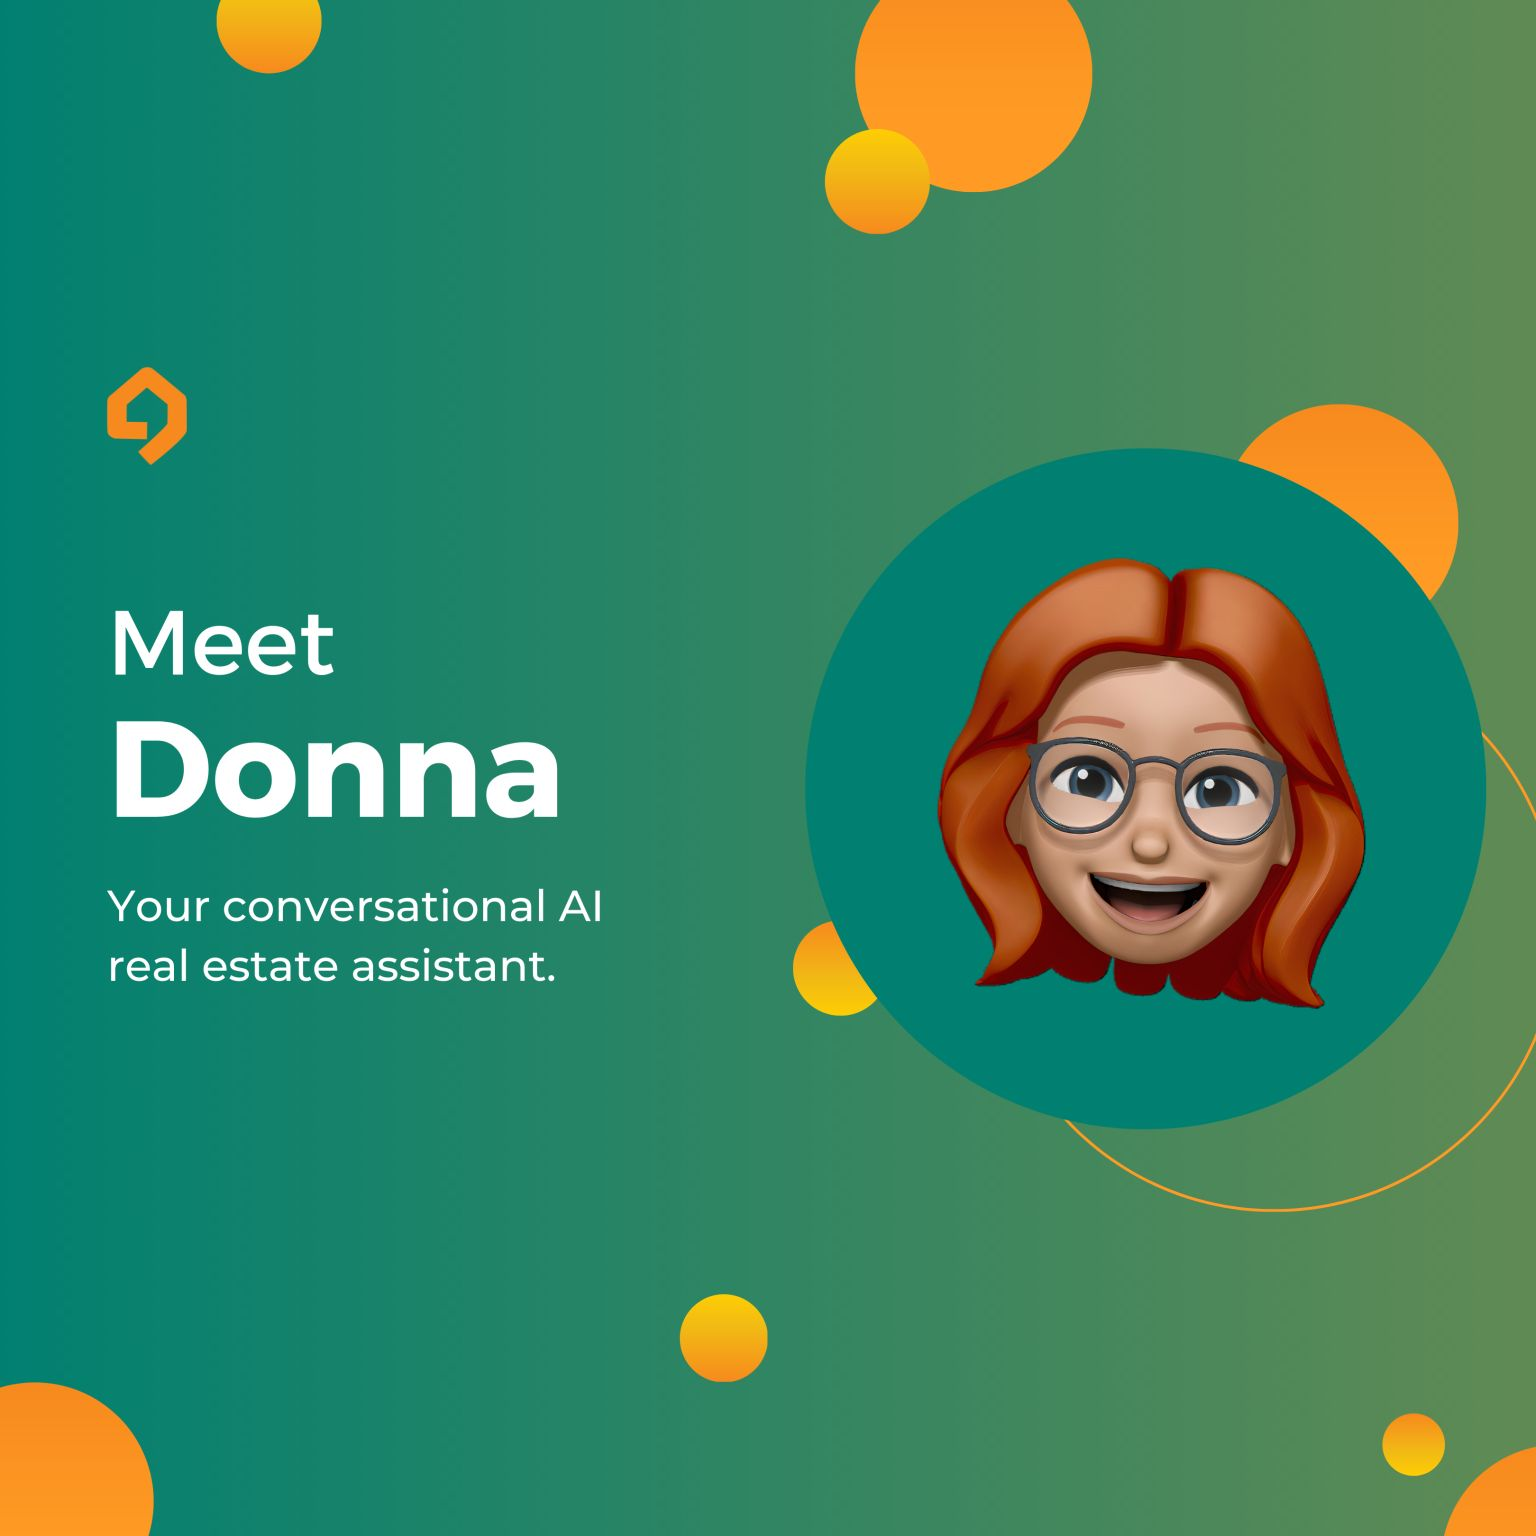 Who is Donna?